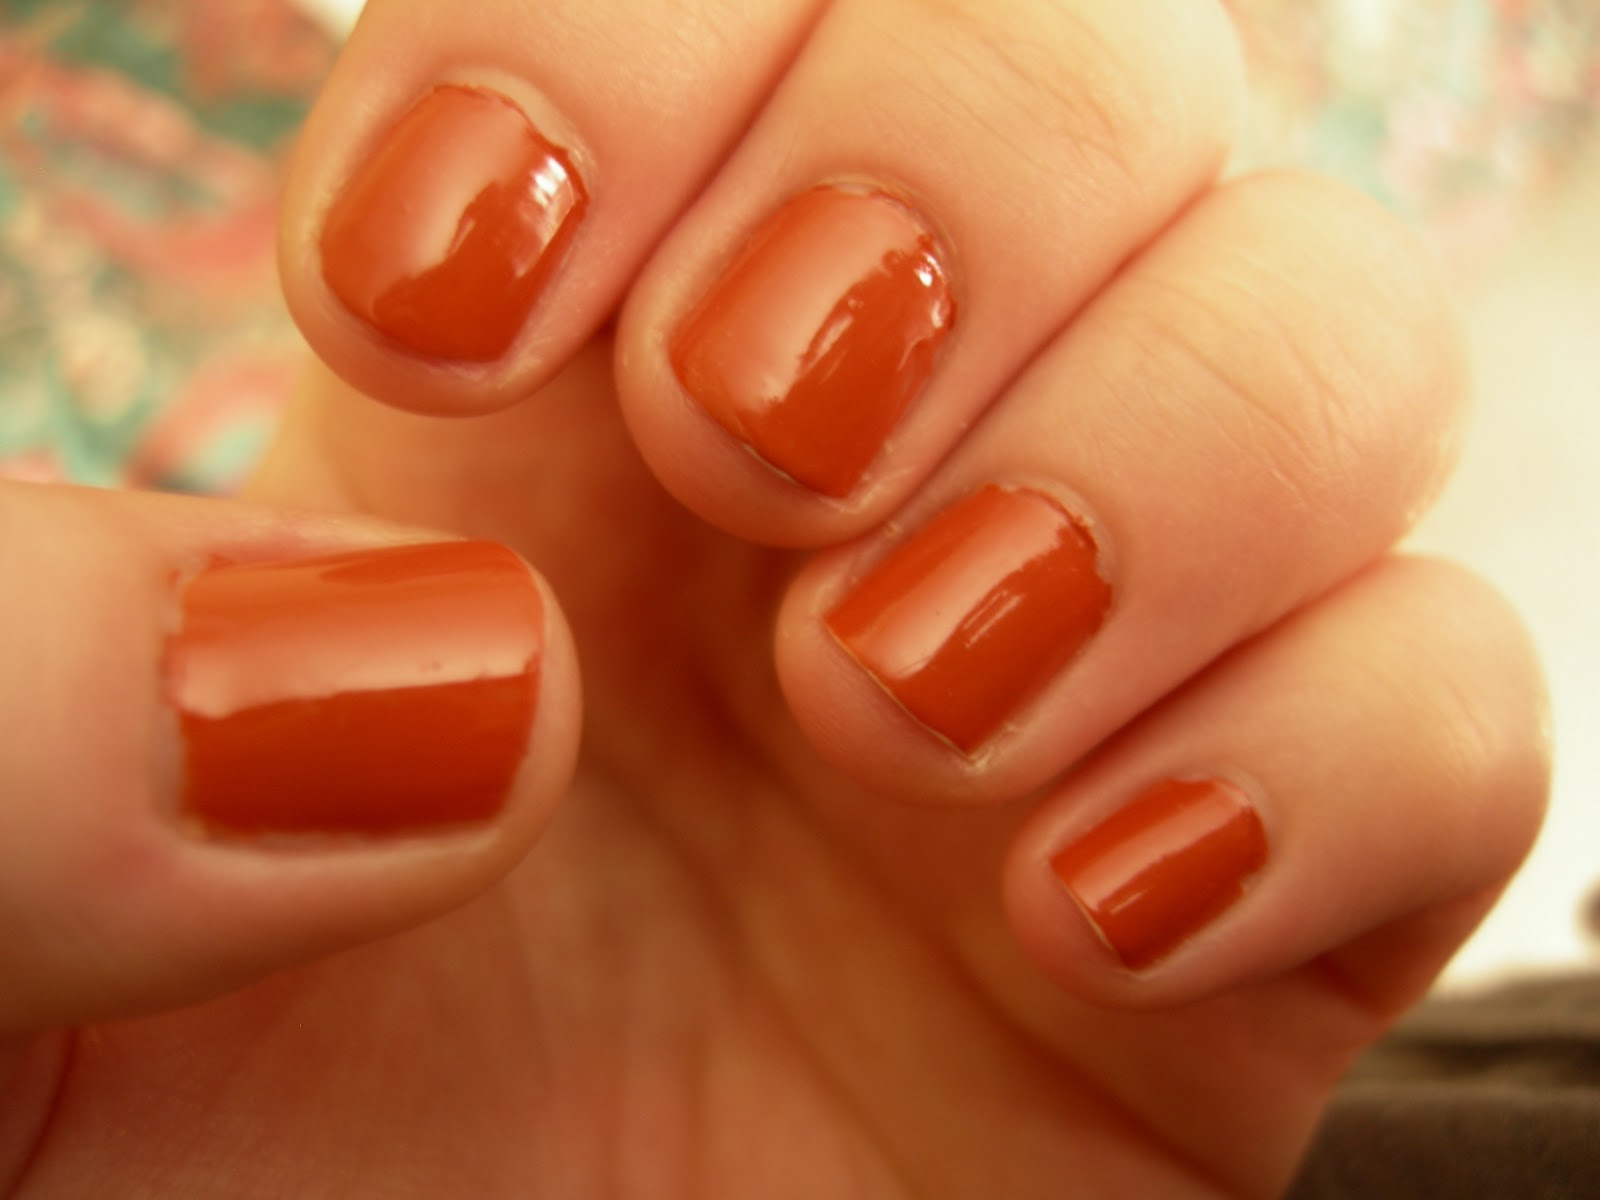 Opi A Good Mandarin Is Hard To Find Vs Hot And Spicy indoors  artificial light